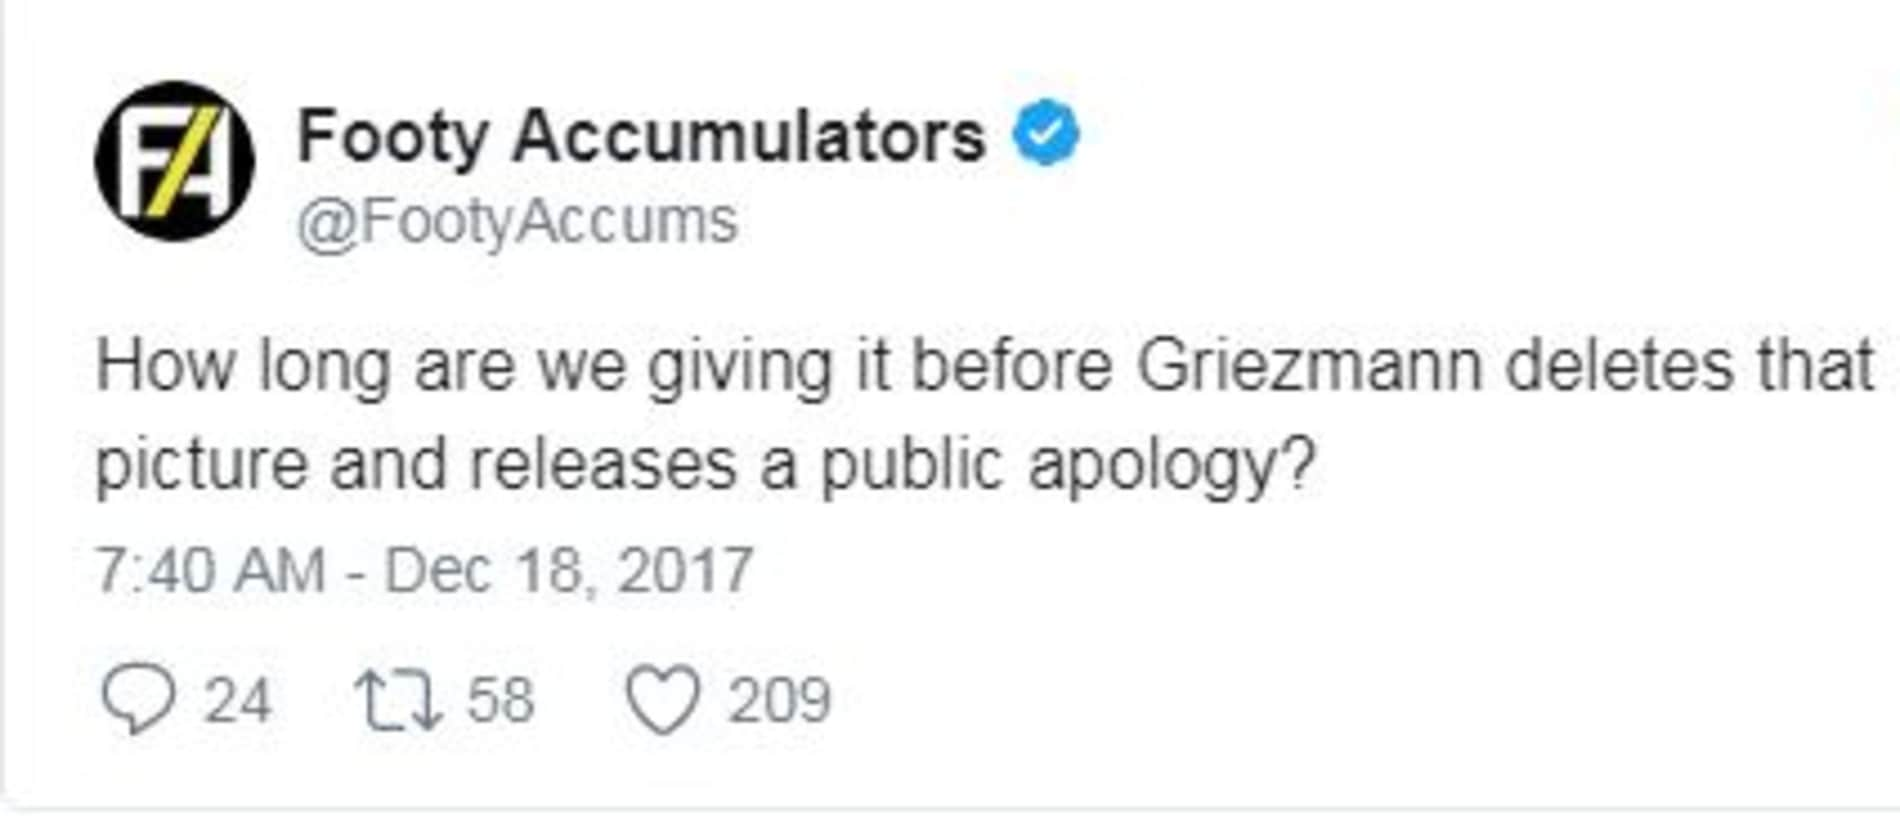 Griezmann had not deleted the tweet after more than 45 minutes